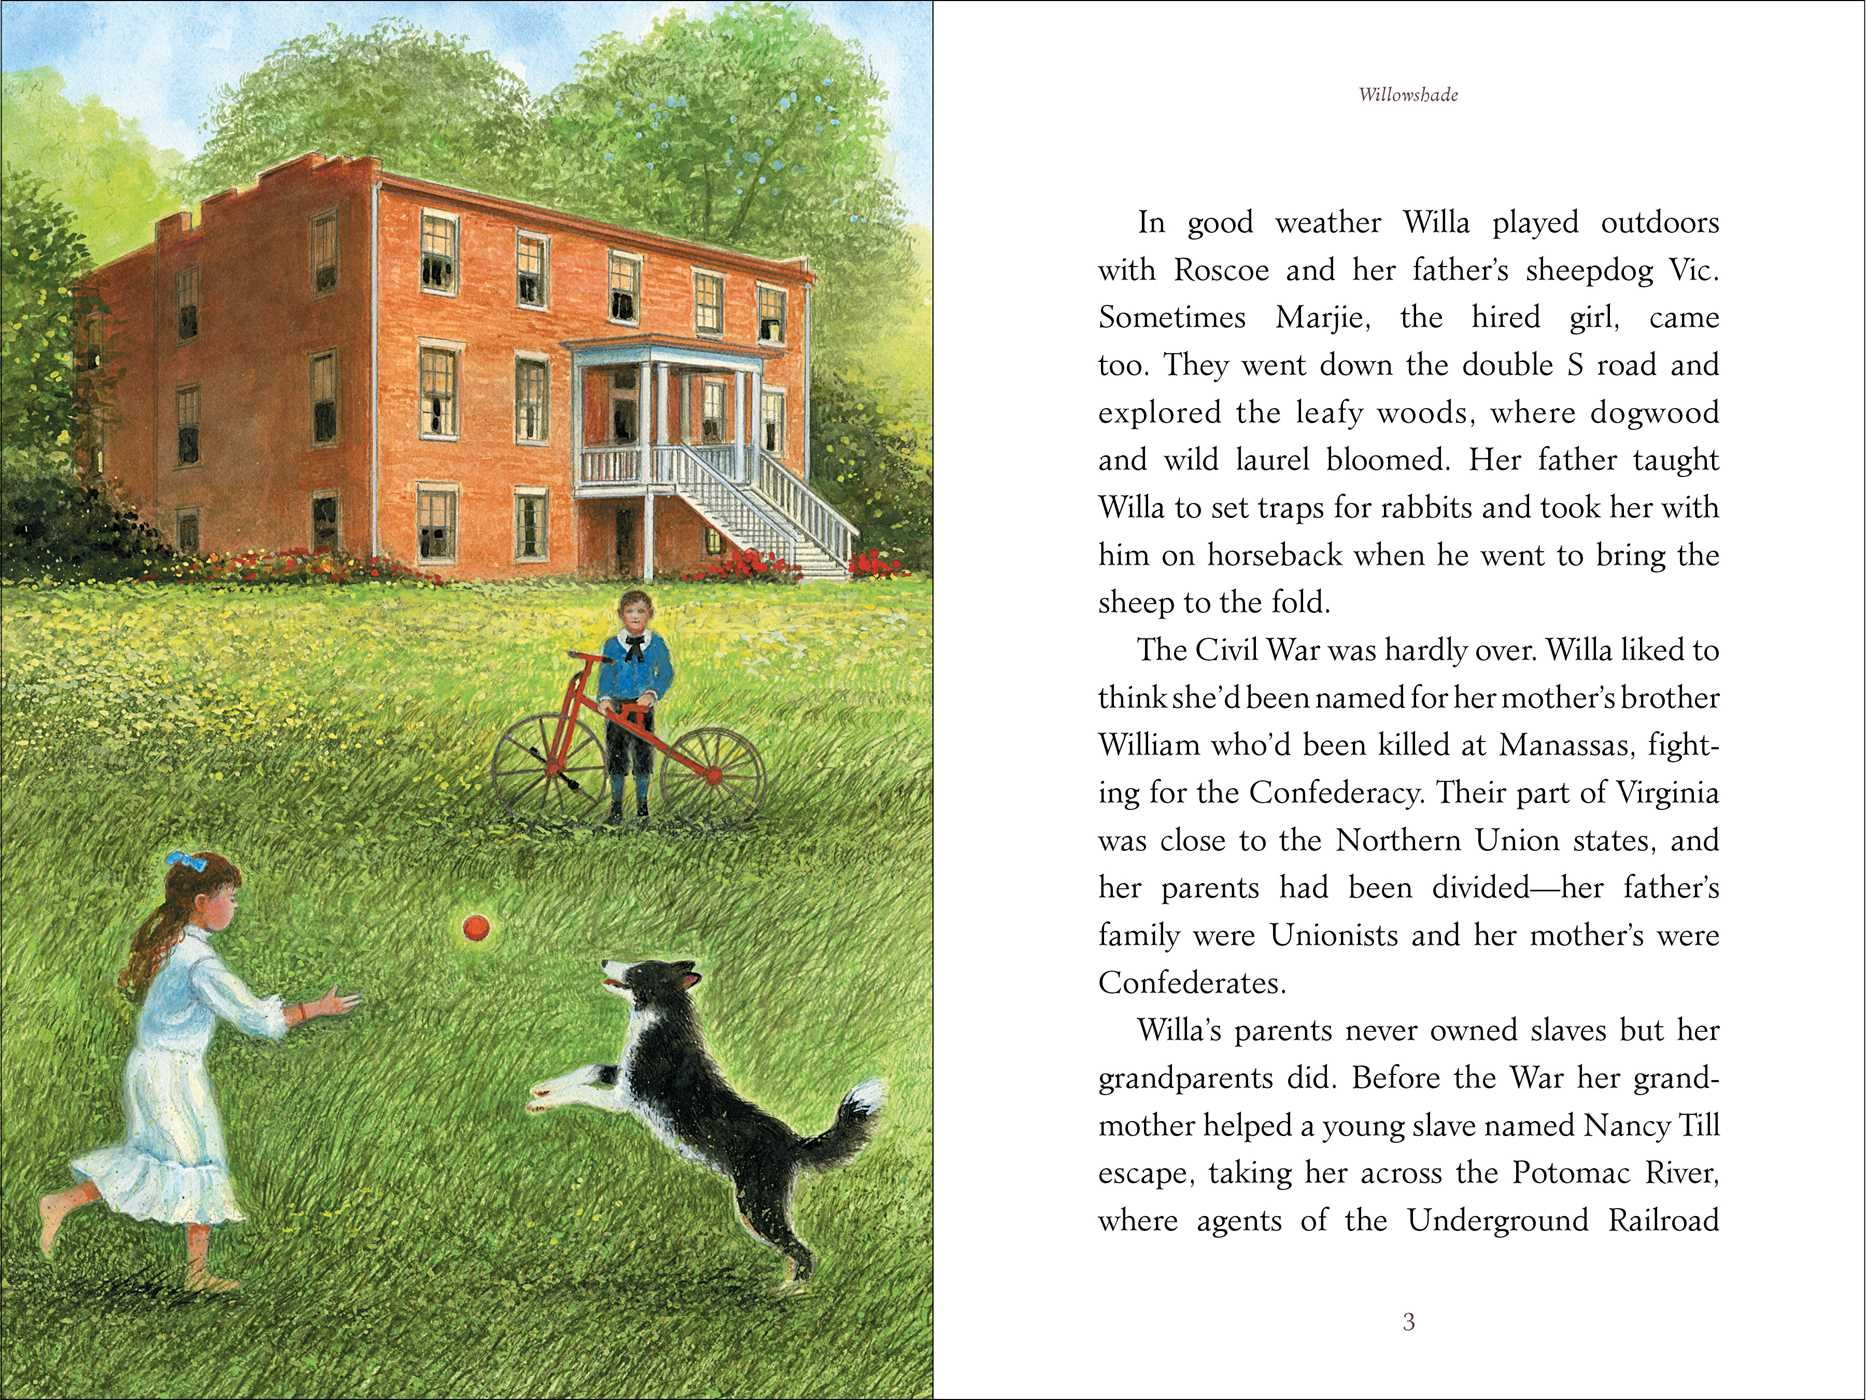 Willa: The Story of Willa Cather, an American Writer (American Women Writers) by Simon Schuster Paula Wiseman Books (Image #3)